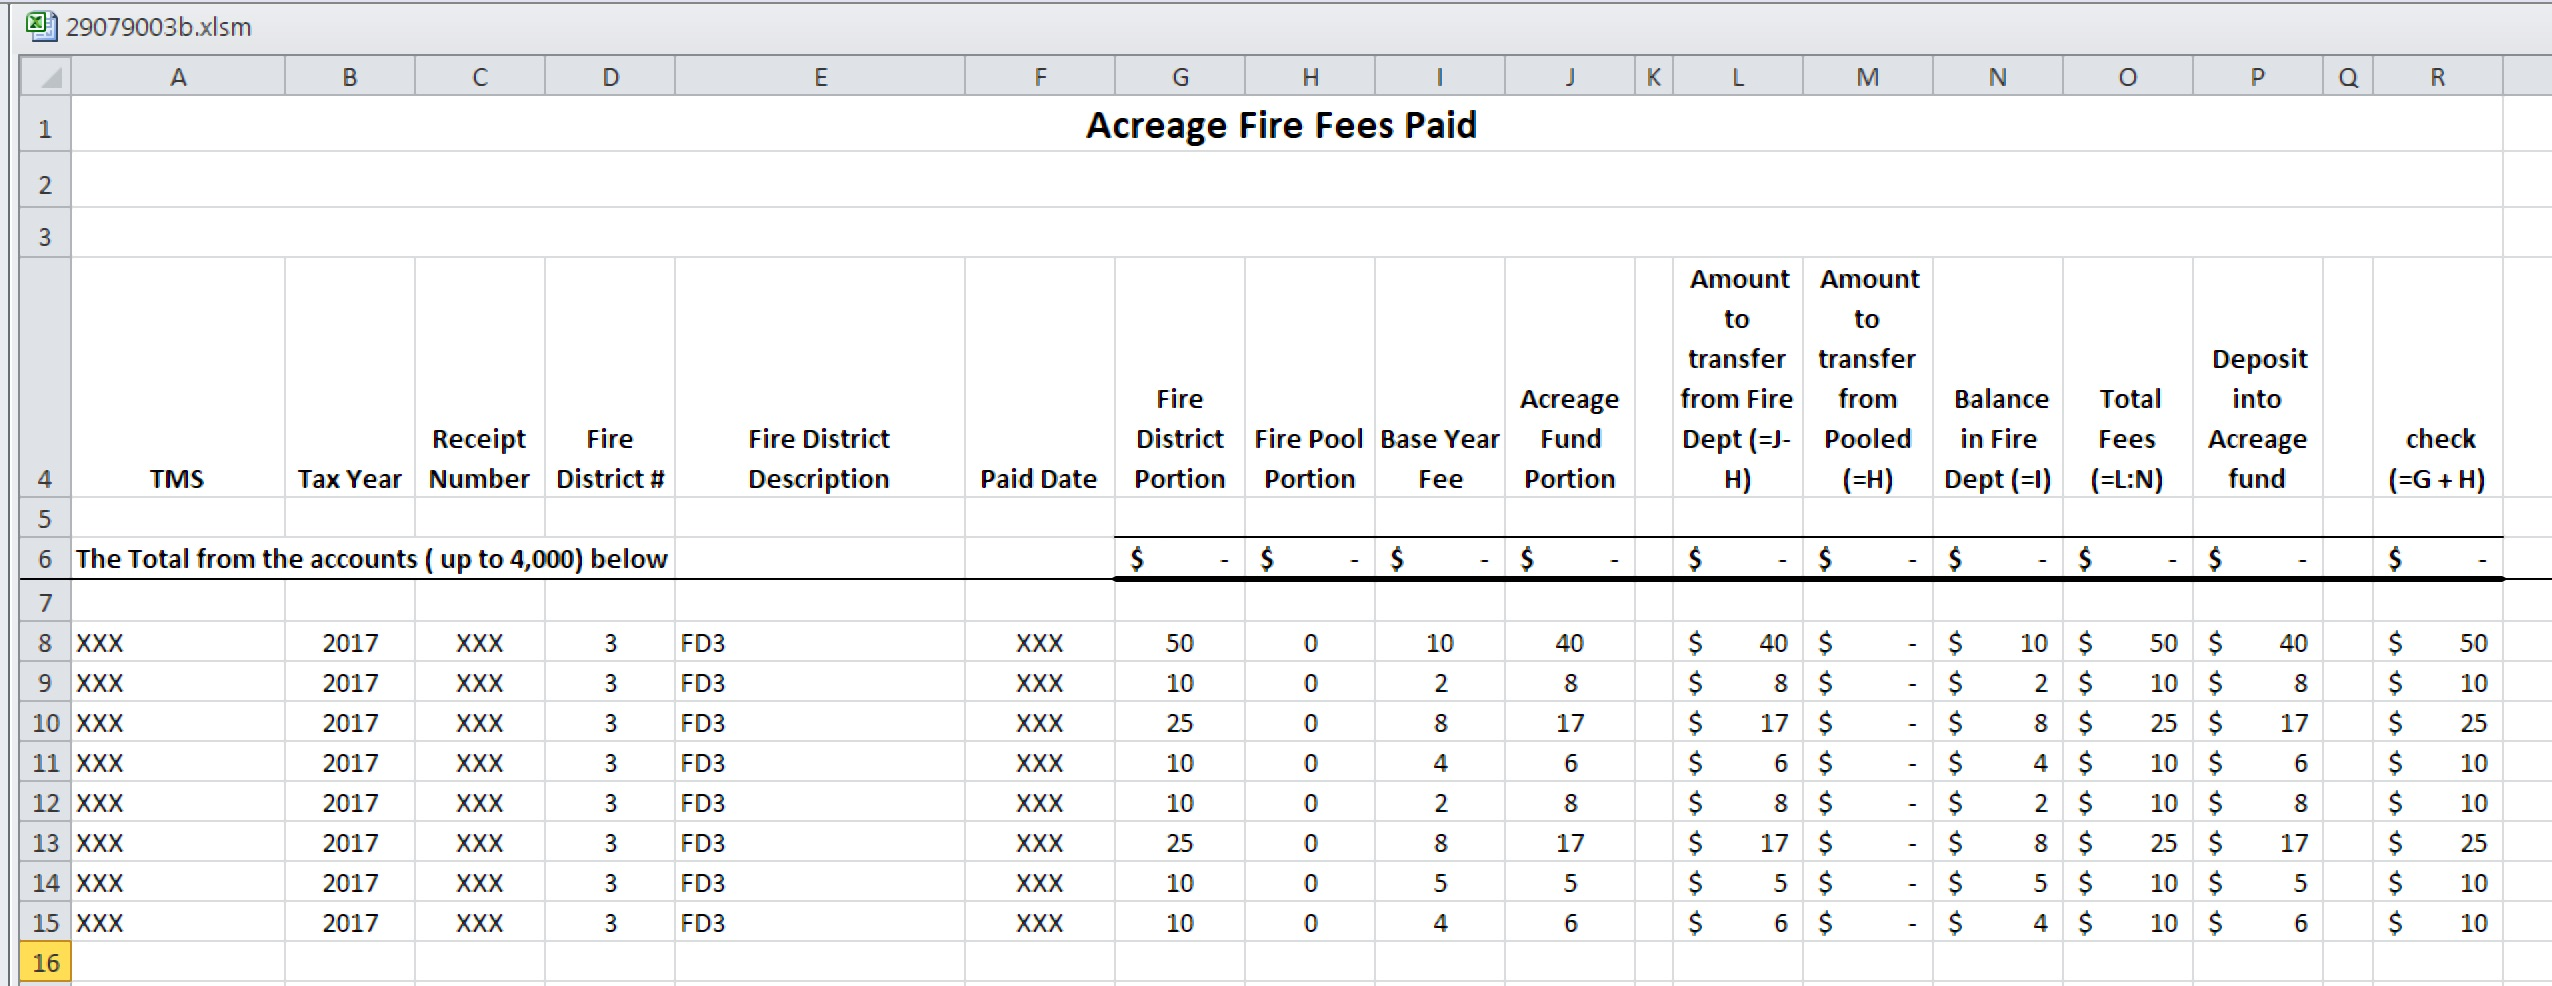 Vba To Copy Paste Portion Of A Row If Criteria Is Met From